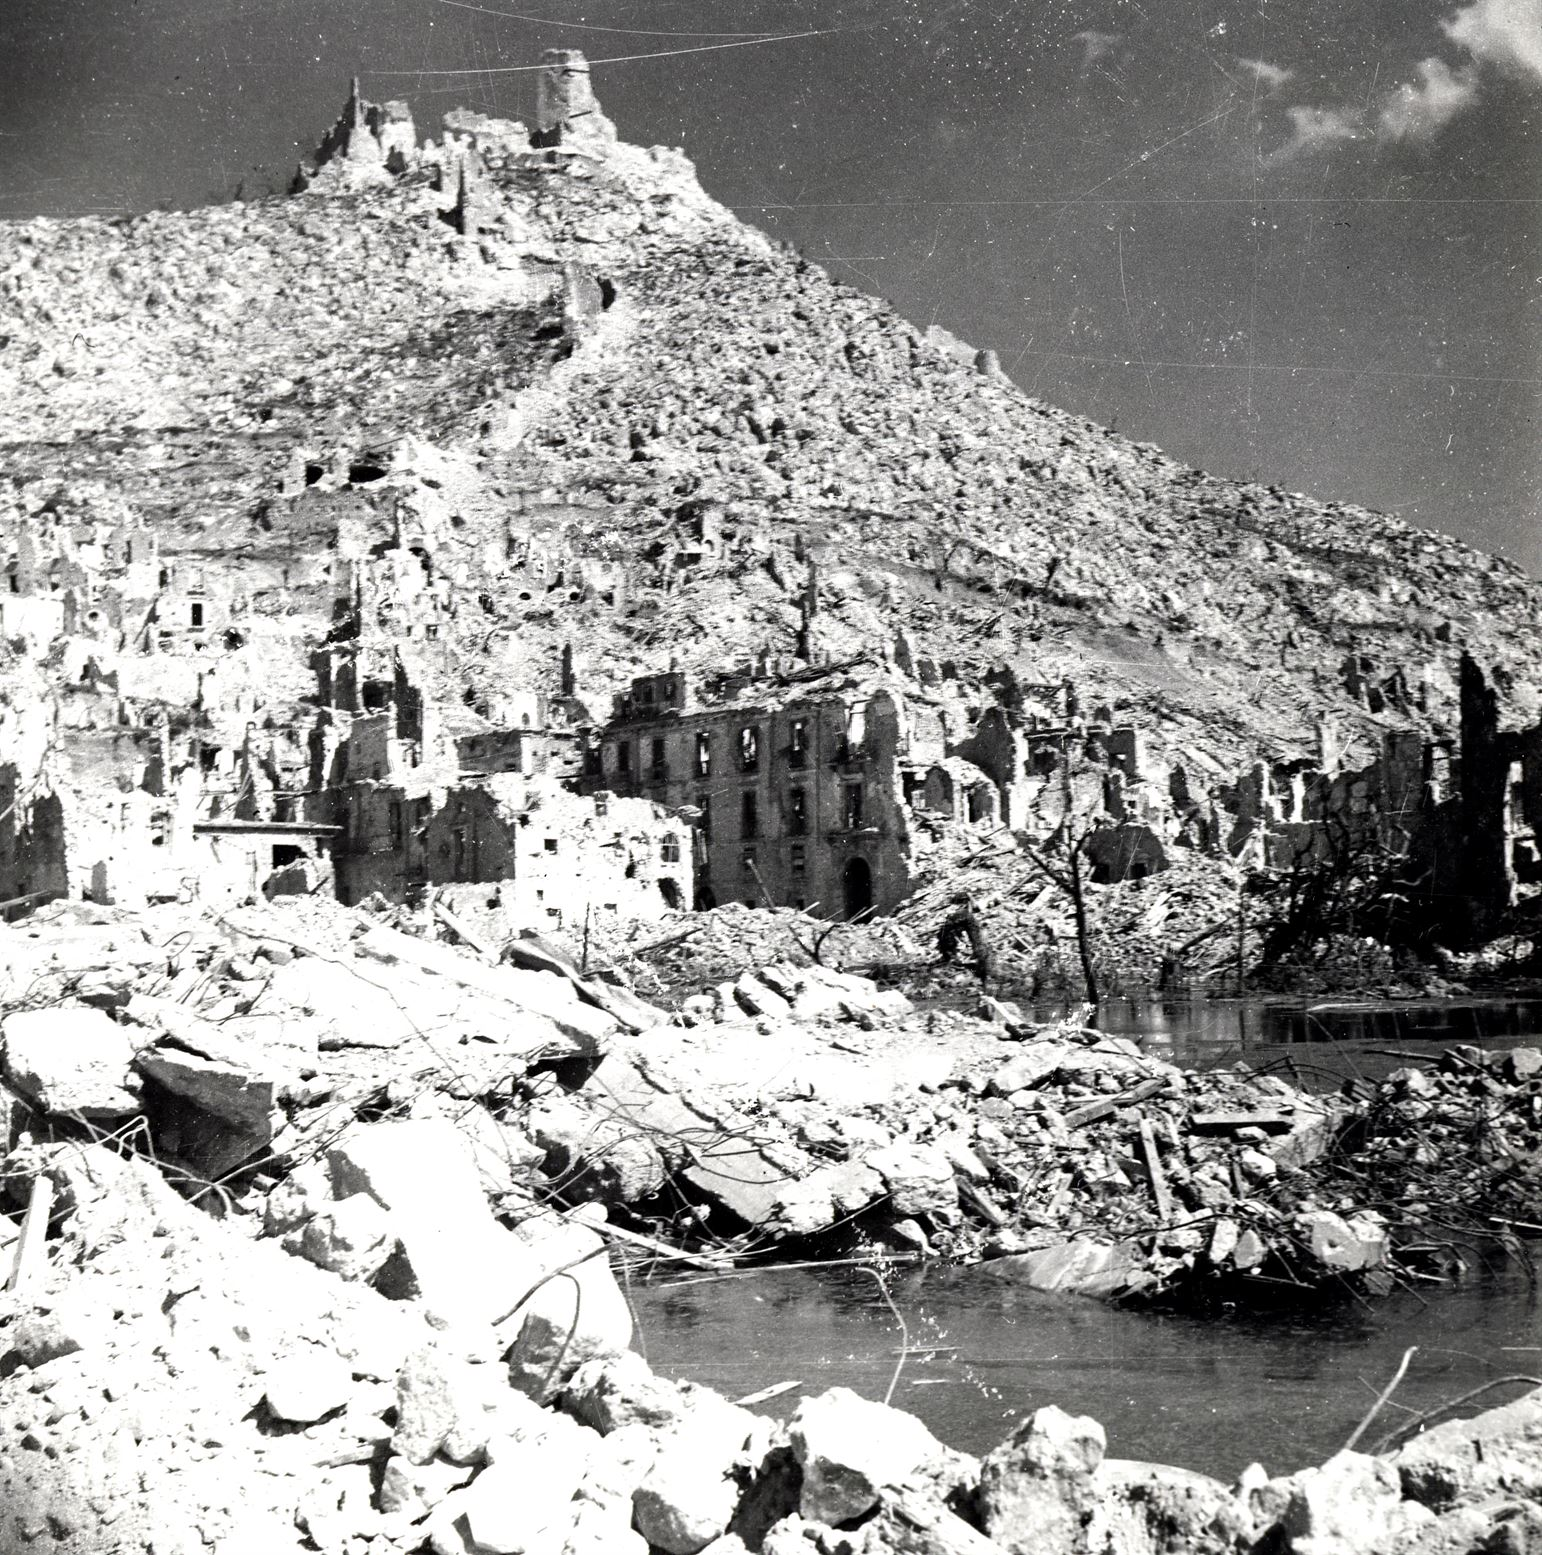 Cassino, Italy. May 1944. <br /><em>(Photo: Library and Archives Canada PA-032995)</em>